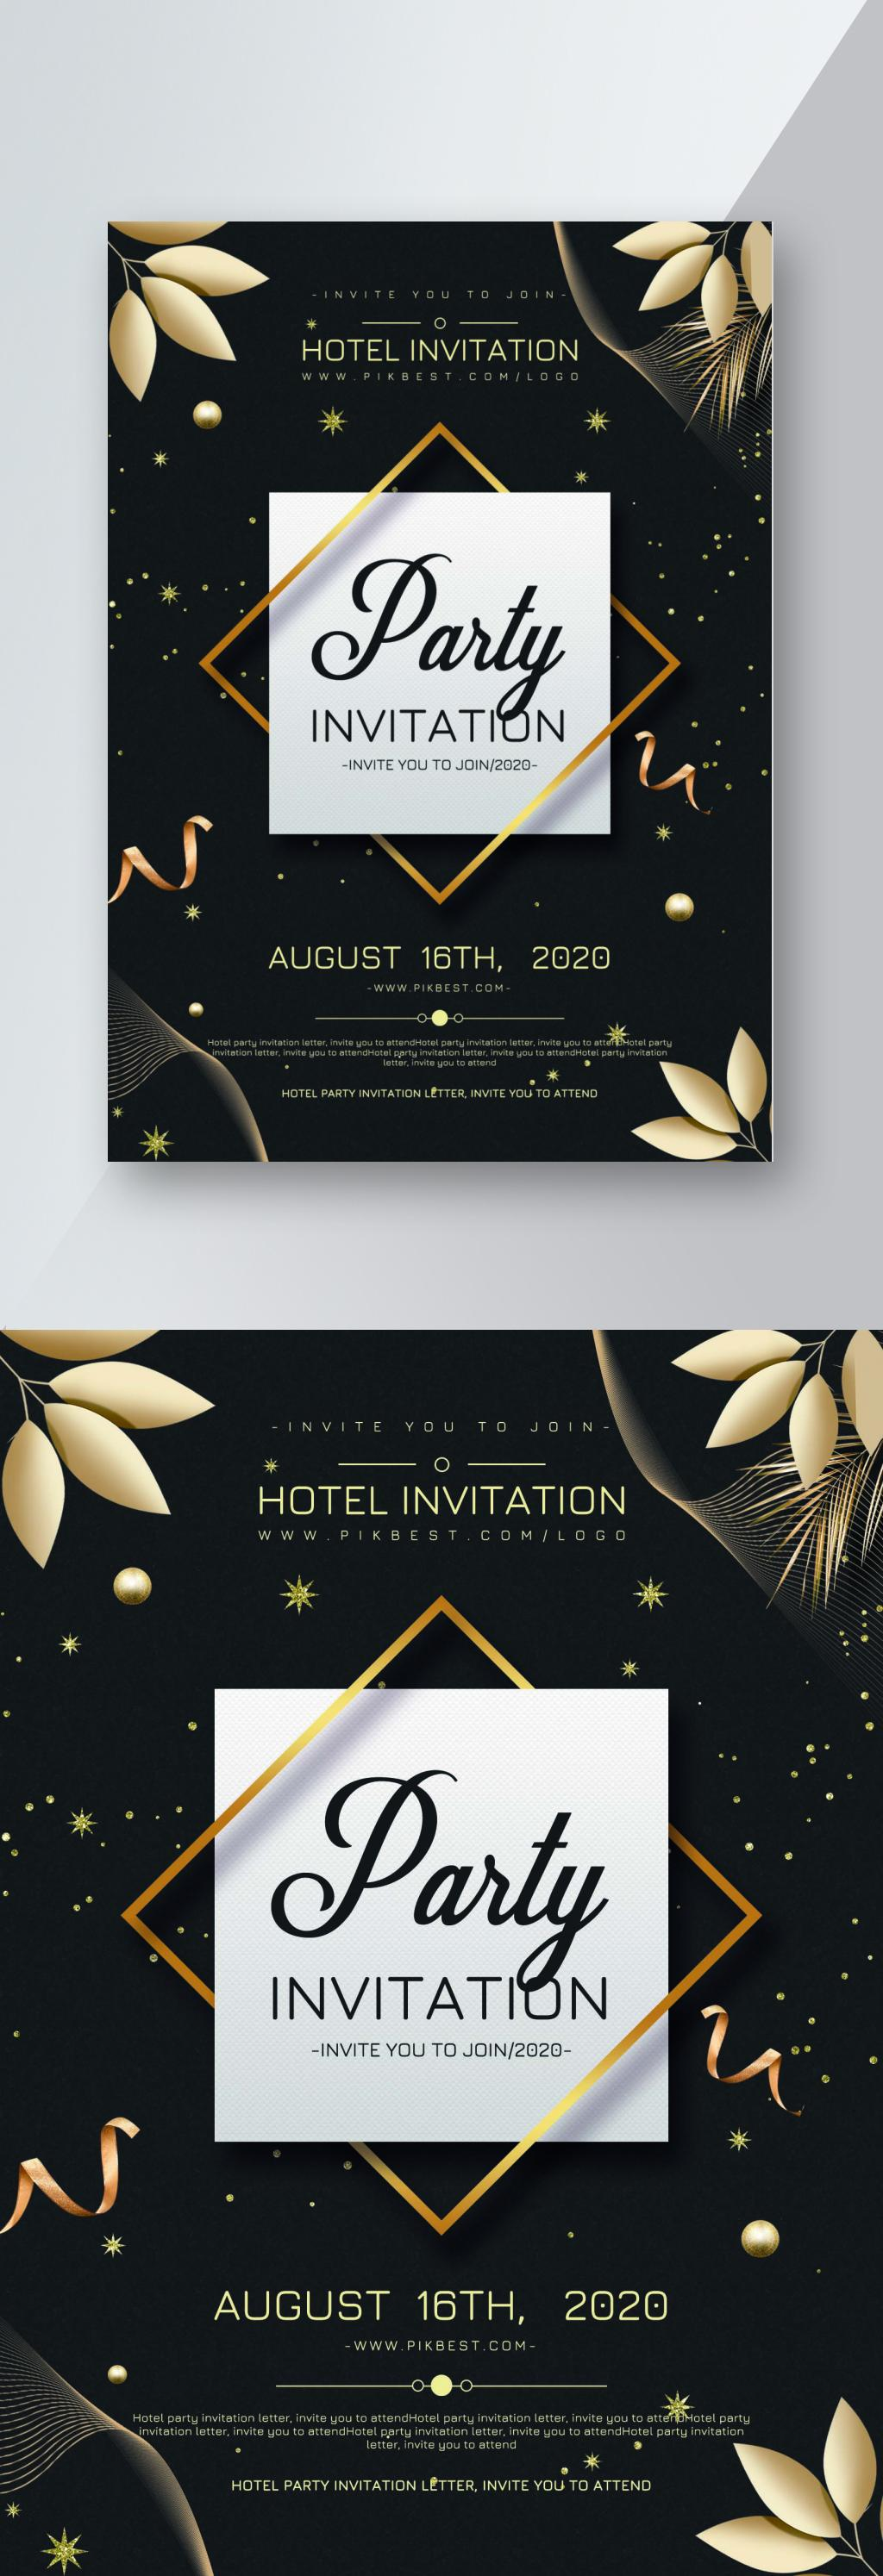 Black Gold Wind Hotel Party Invitation Flyer Design Template Image Picture Free Download 450022954 Lovepik Com